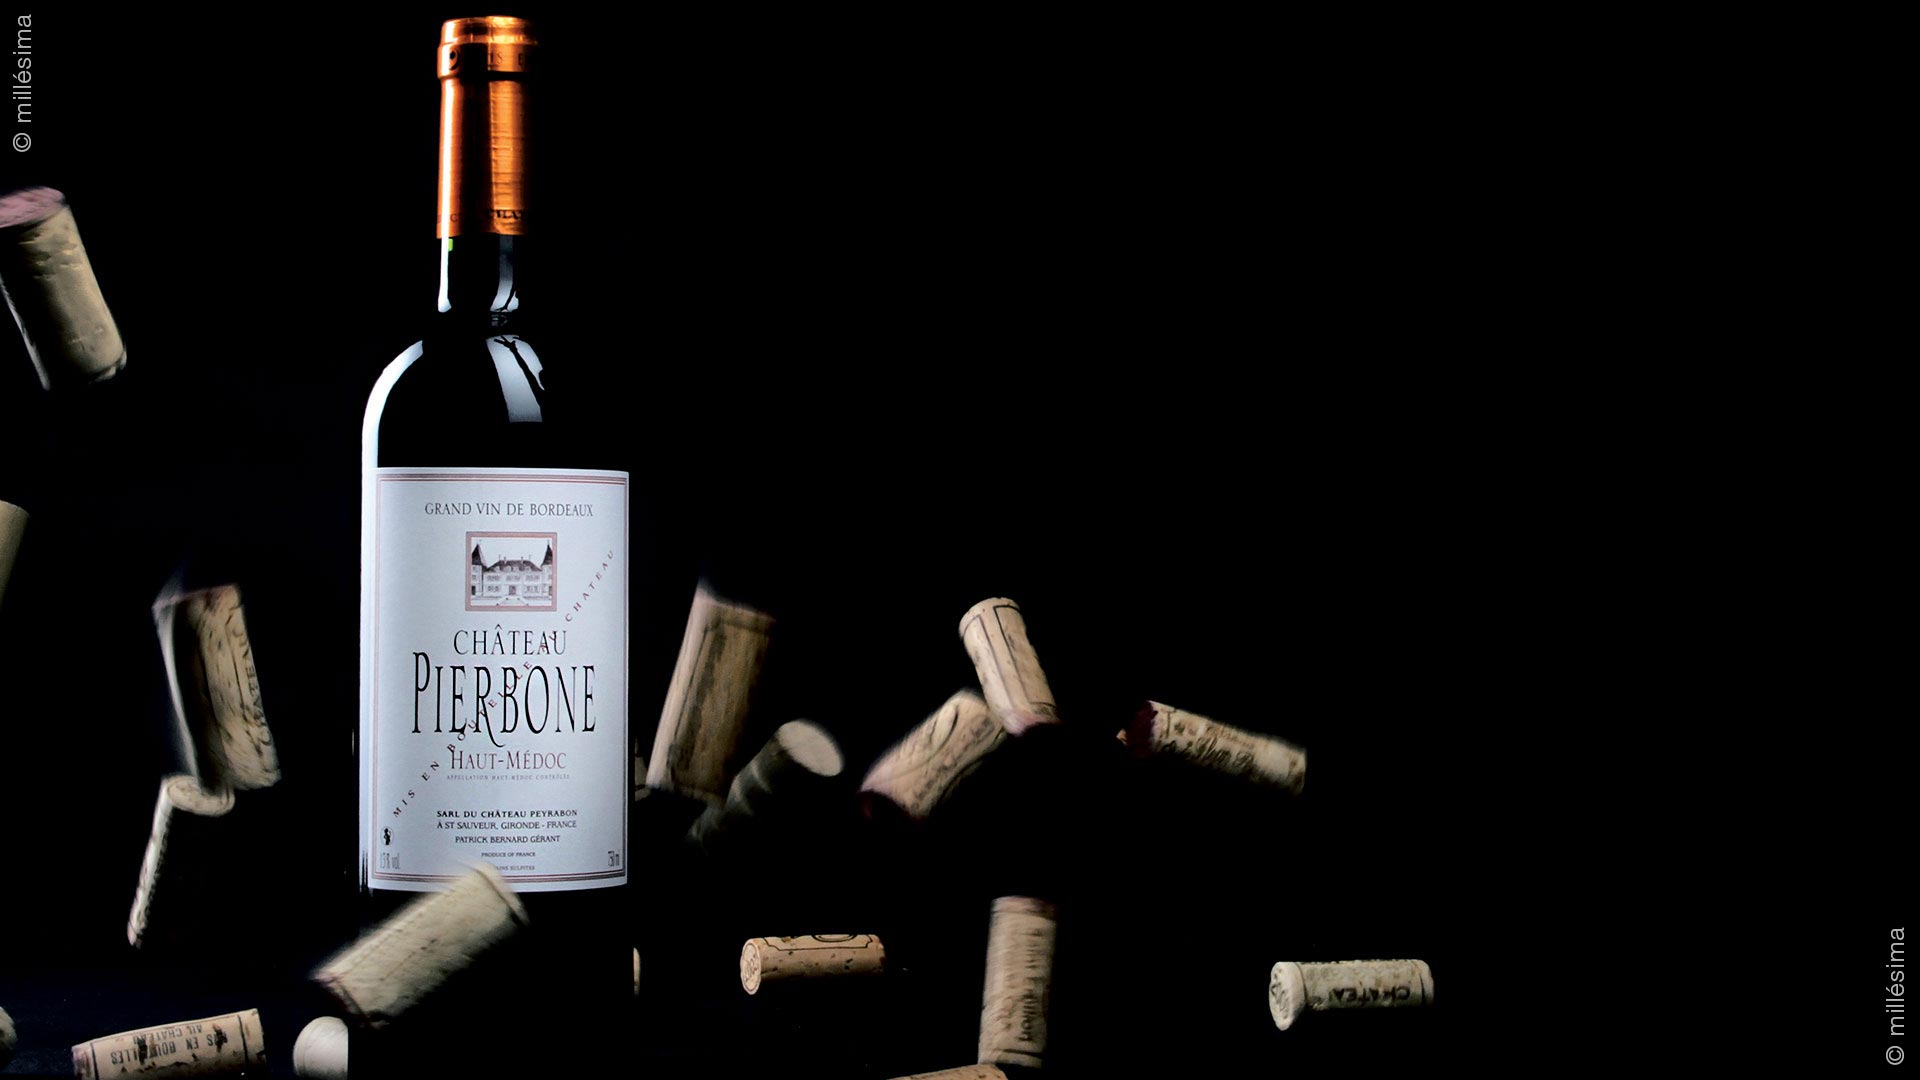 Chateau Pierbone 2008 - 1